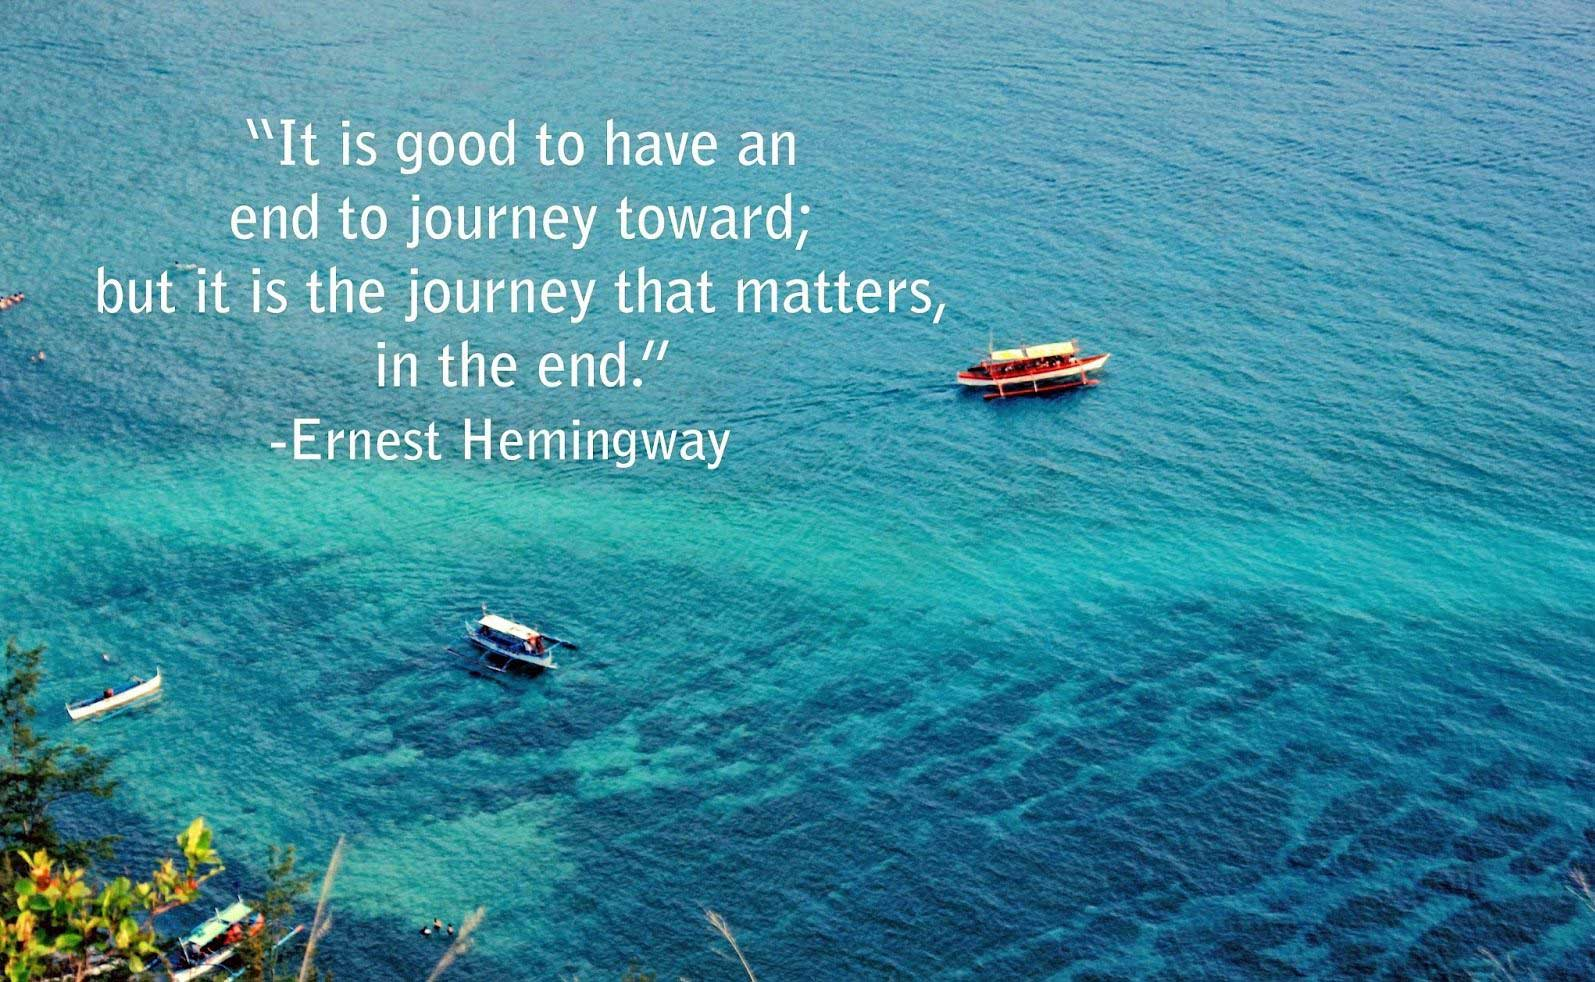 it is the journey that matters in the end life quotes tumblr